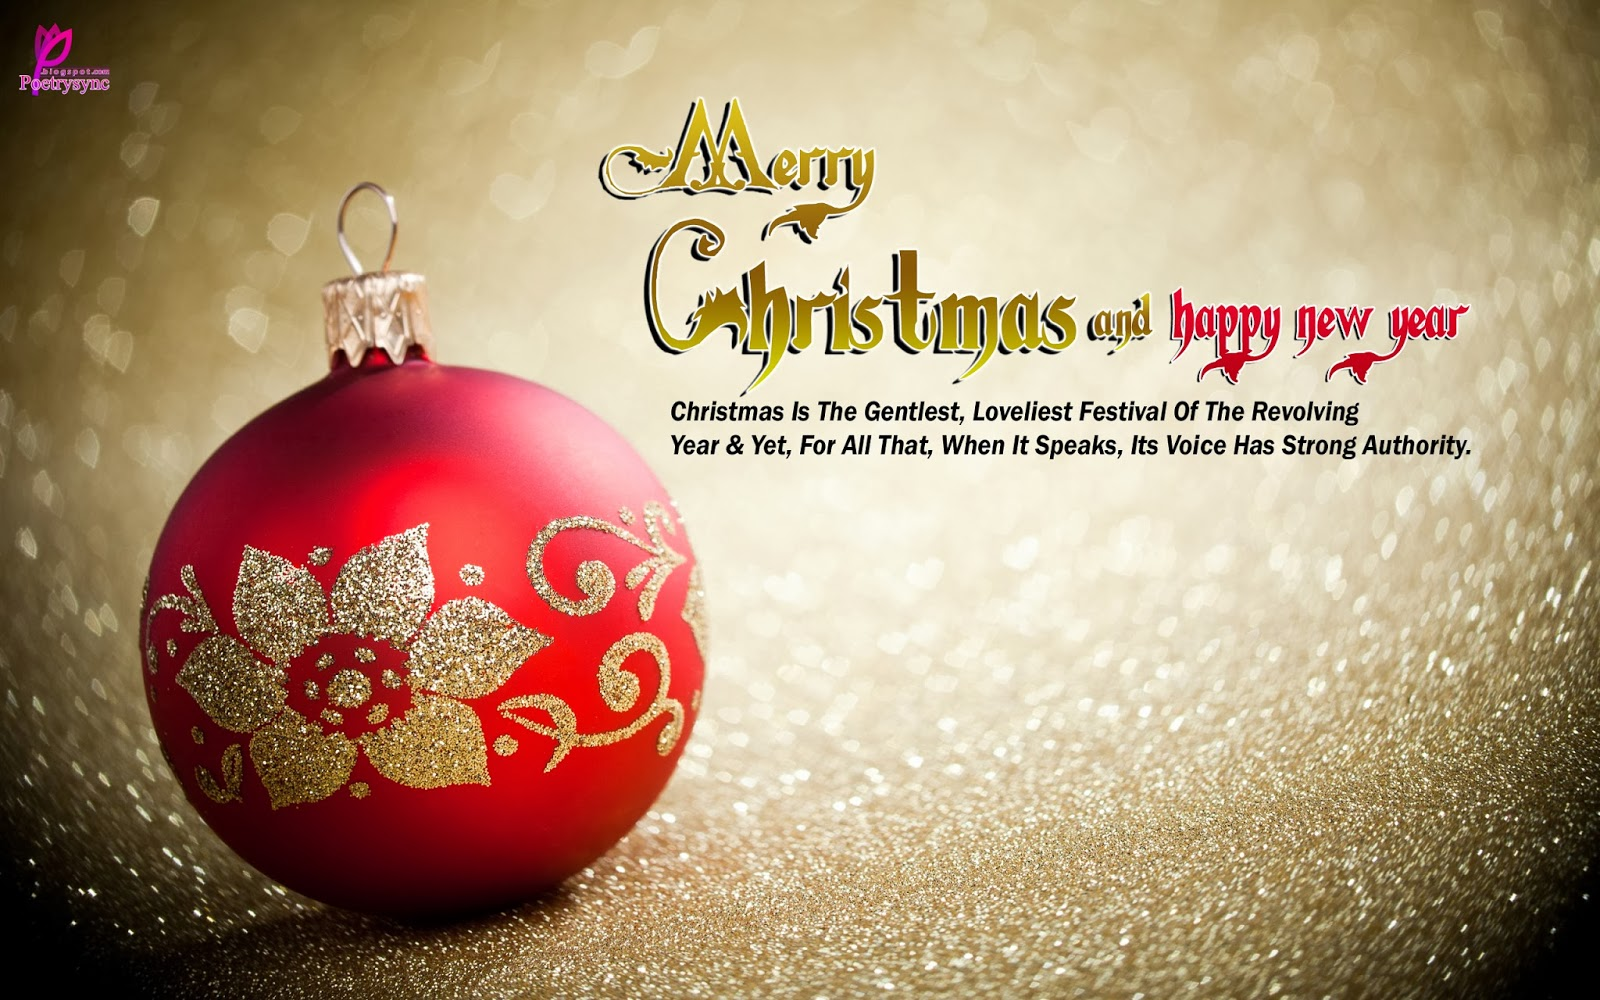 Free Christmas Quotes And Sayings Quotesgram: Merry Christmas Sayings And Quotes. QuotesGram